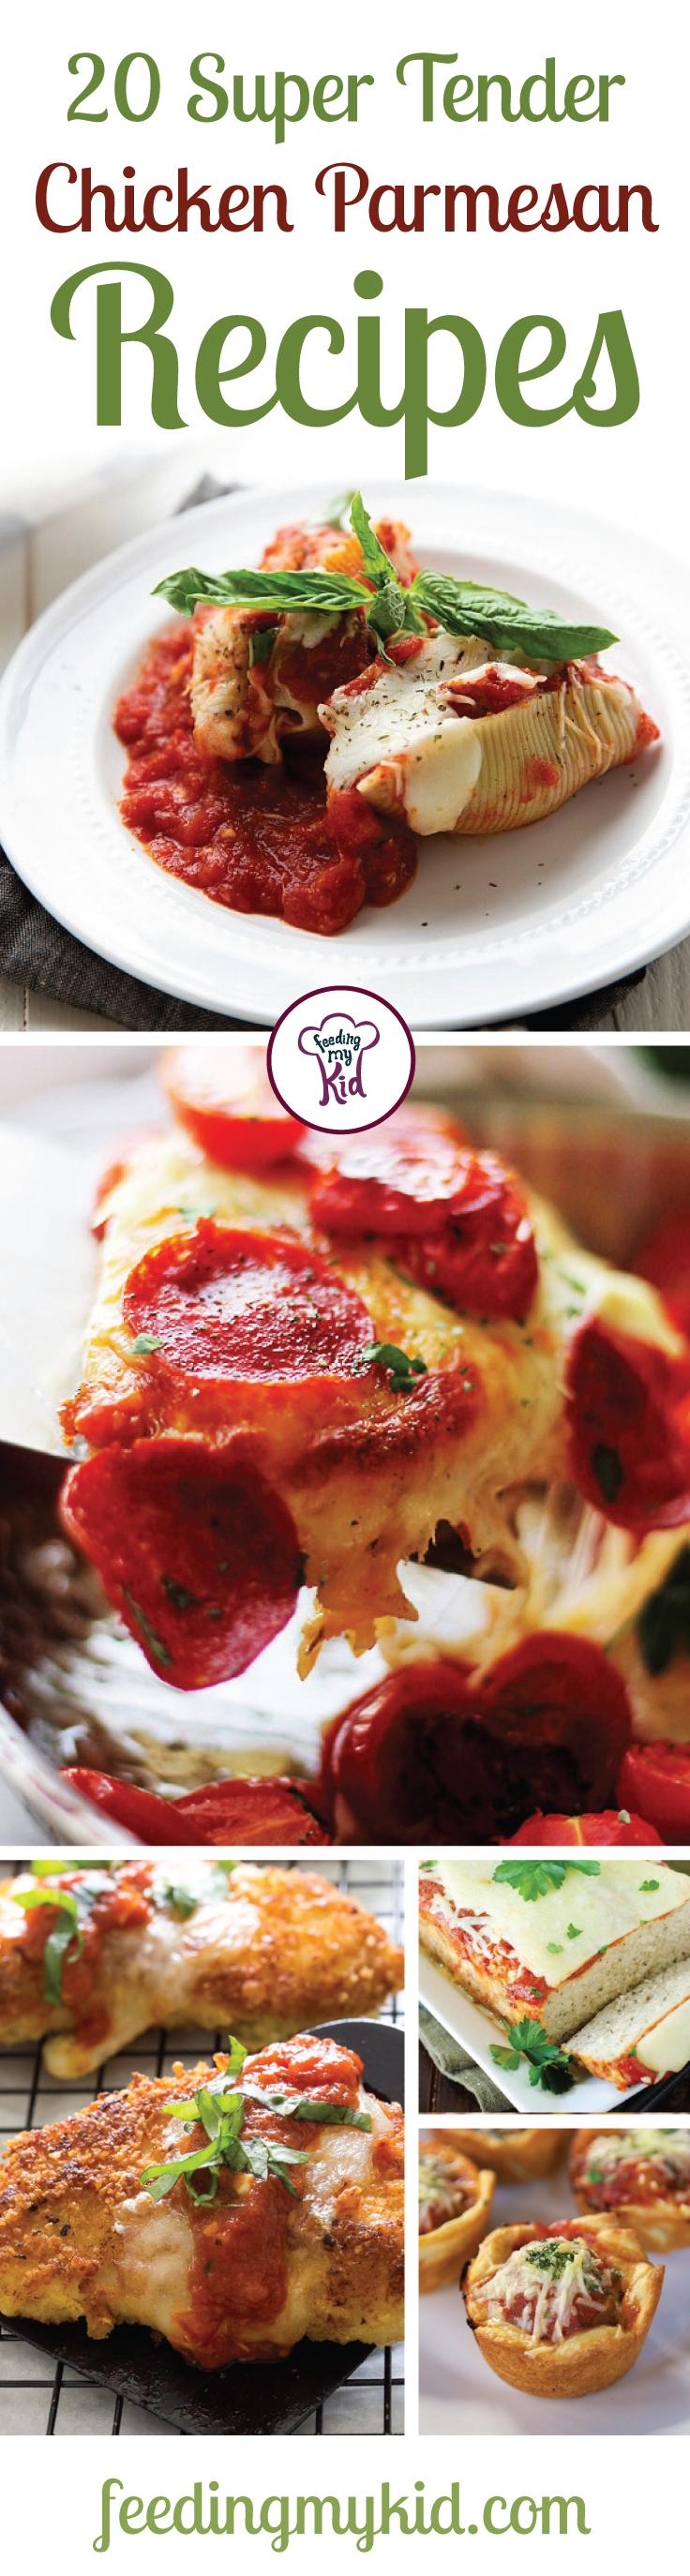 20 Super Tender Chicken Parmesan Recipes - This is a must share! Chicken parmesan always makes for a great meal, whether it's a nice lunch or a fancy dinner. These recipes are perfect to showcase your great cooking skills. From 20 minute healthy chicken parmesan or crescent wrap chicken parmesan! The whole family will love these! This is a must pin! #fmk #recipes